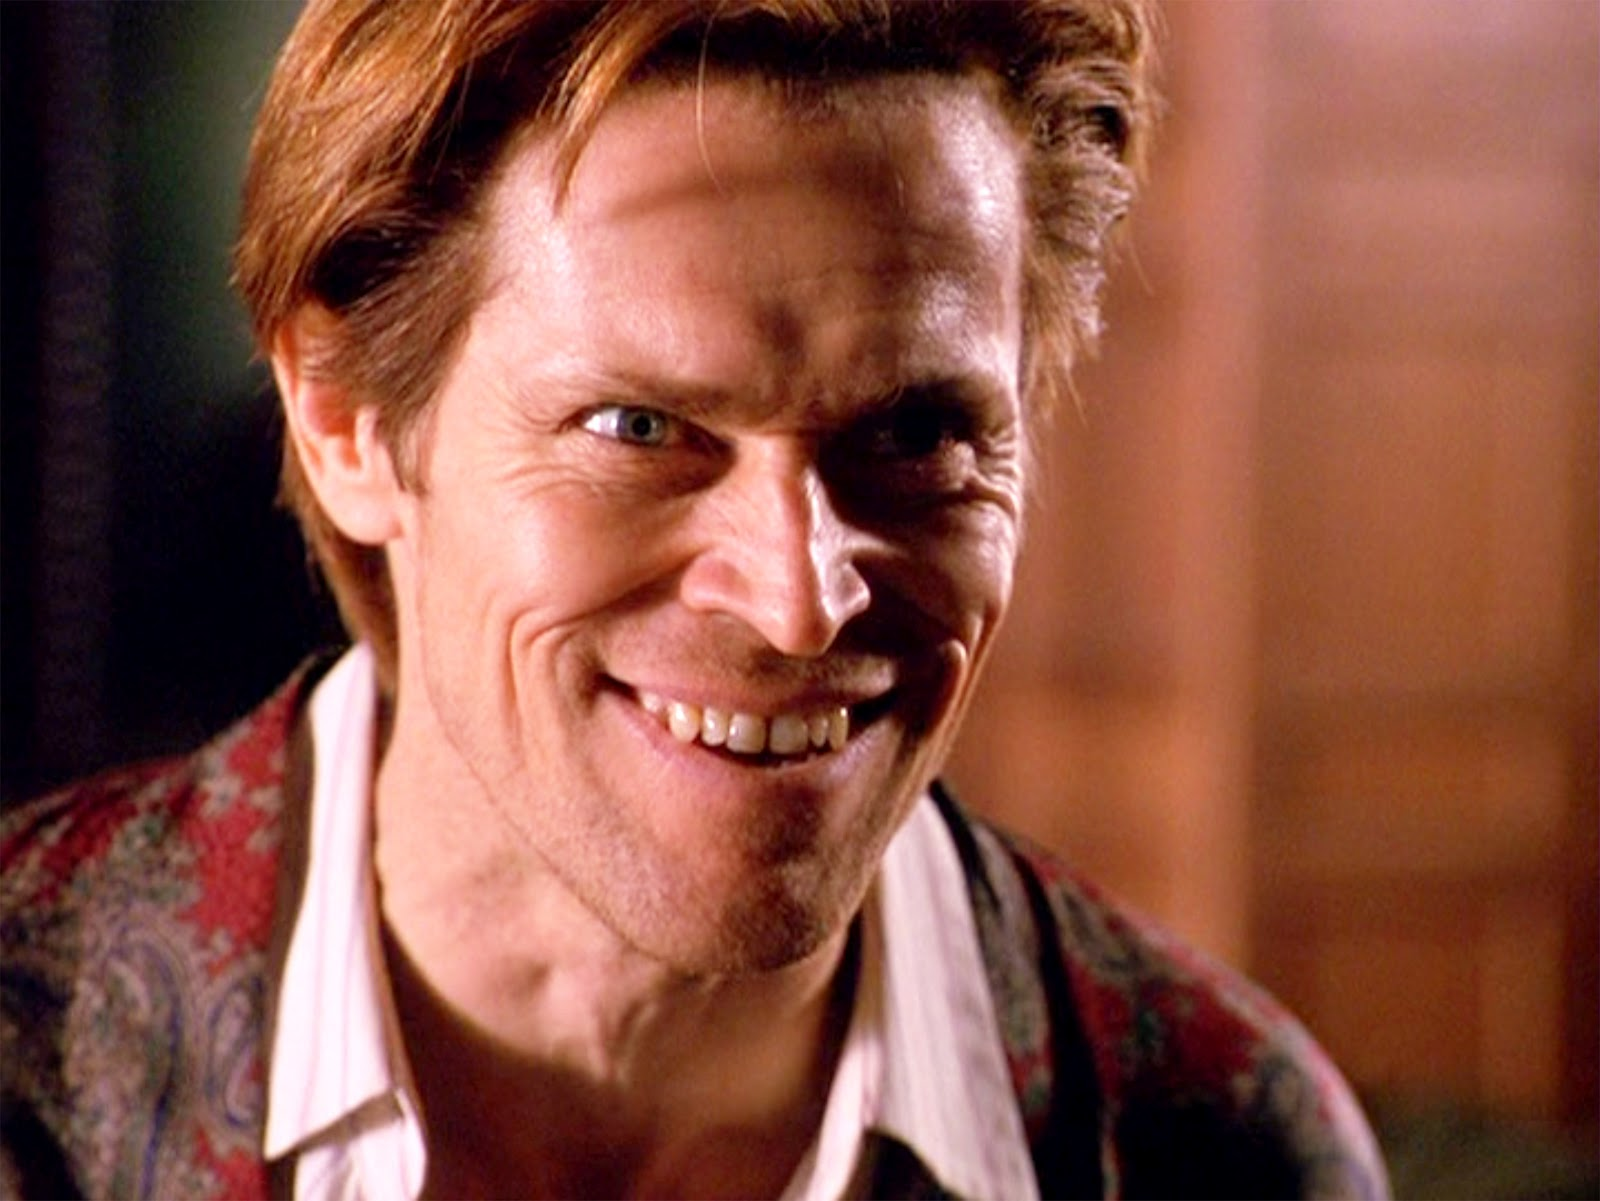 Justice League Adds Willem Dafoe as Good Guy